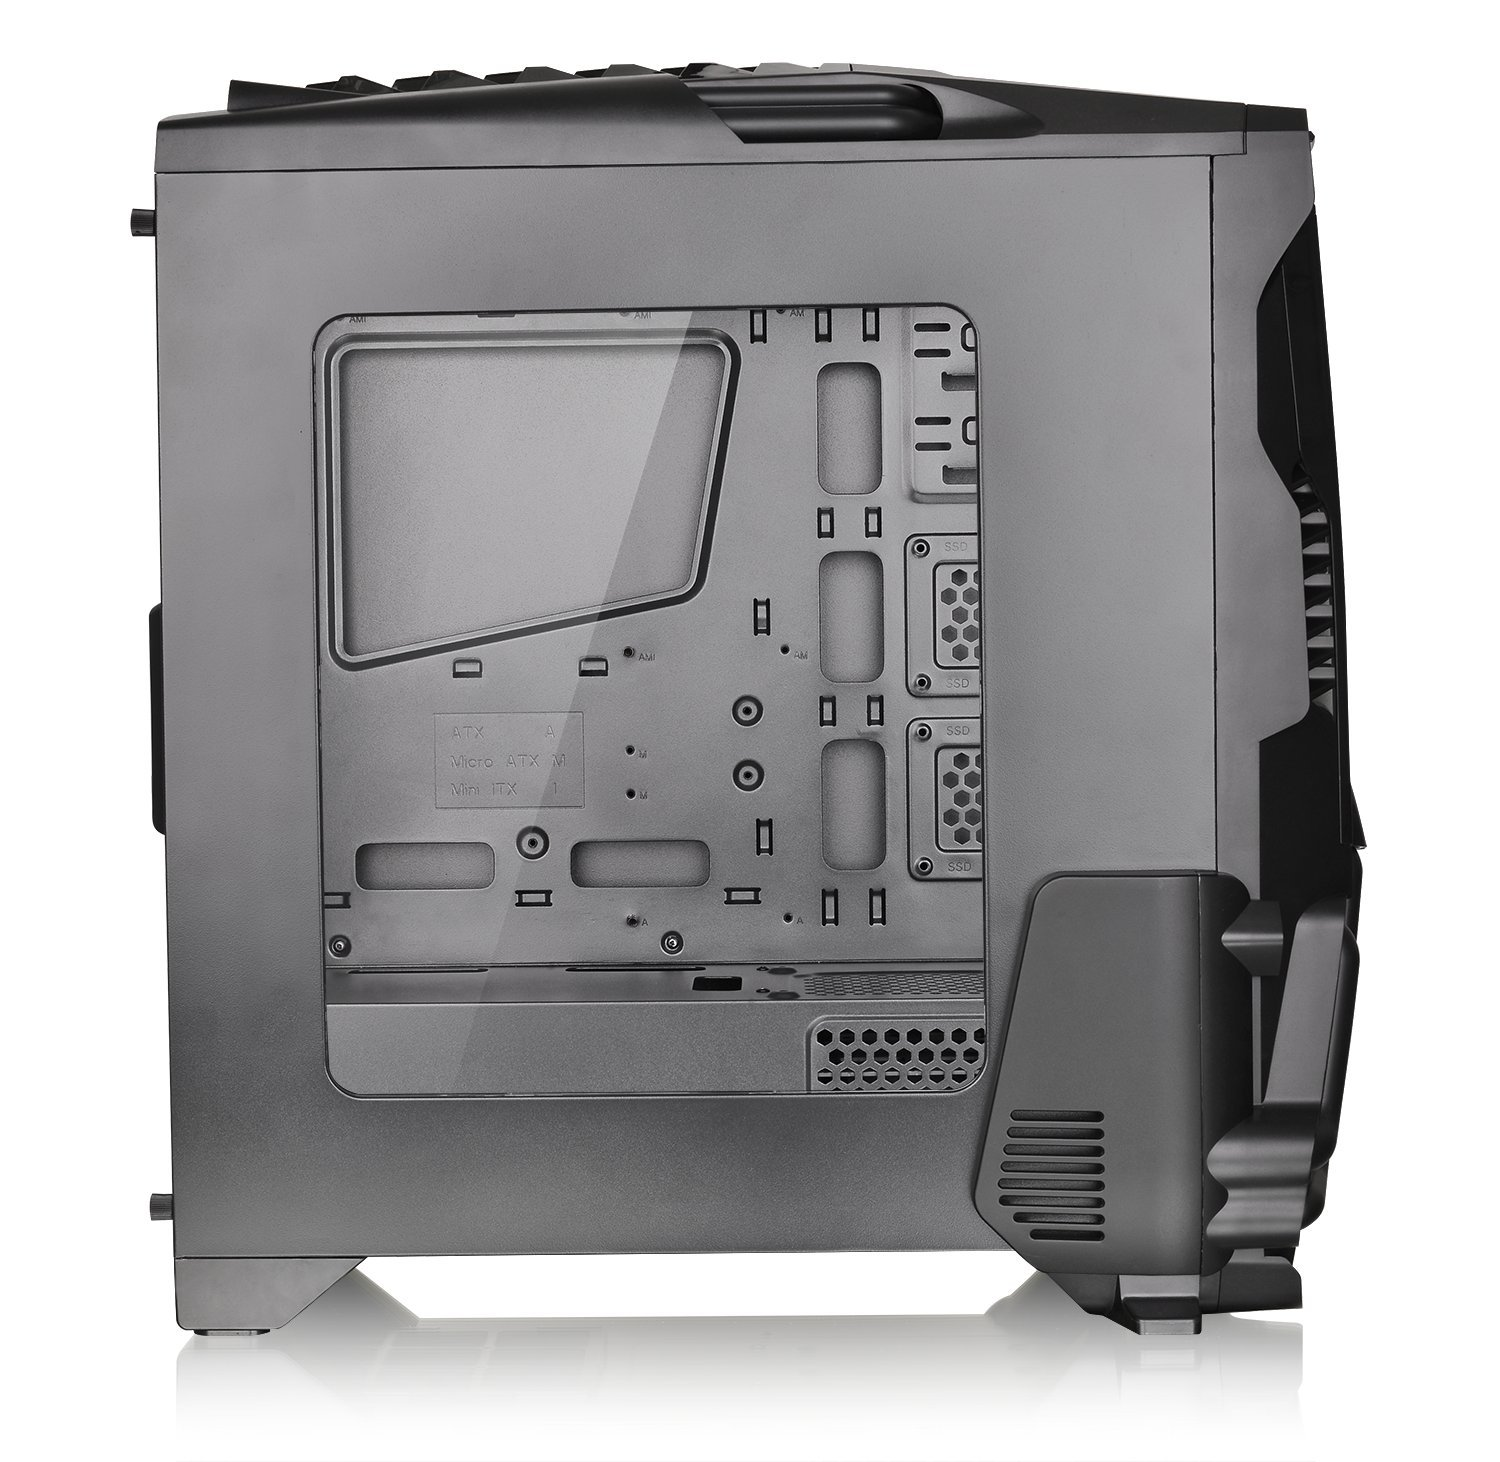 Thermaltake Versa N24 Black ATX Mid Tower Gaming Computer Case Chassis with Power Supply Cover, 120mm Rear Fan preinstalled. CA-1G1-00M1WN-00 by Thermaltake (Image #14)